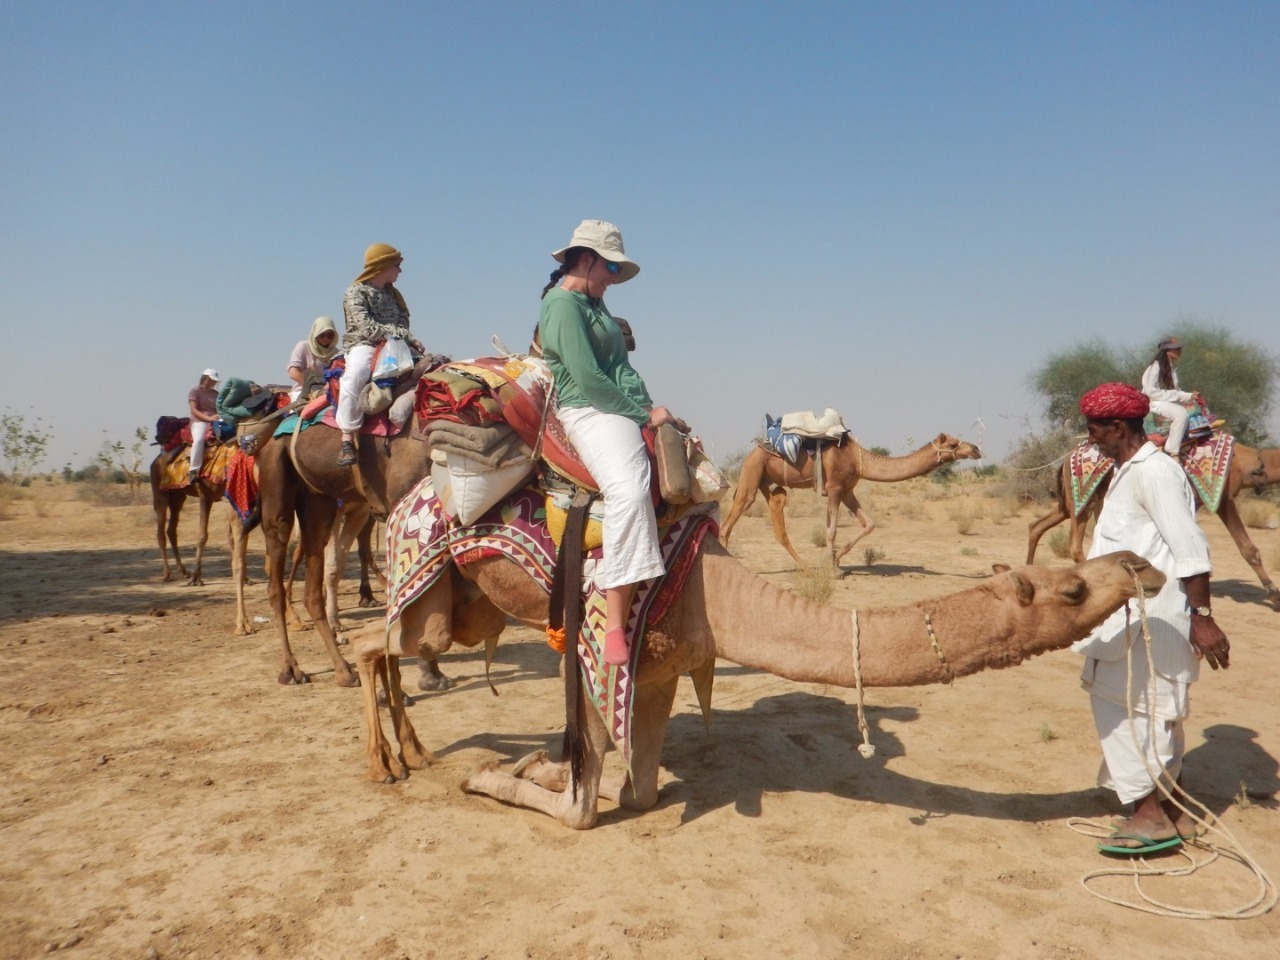 Scariest part of riding camels...getting on & off